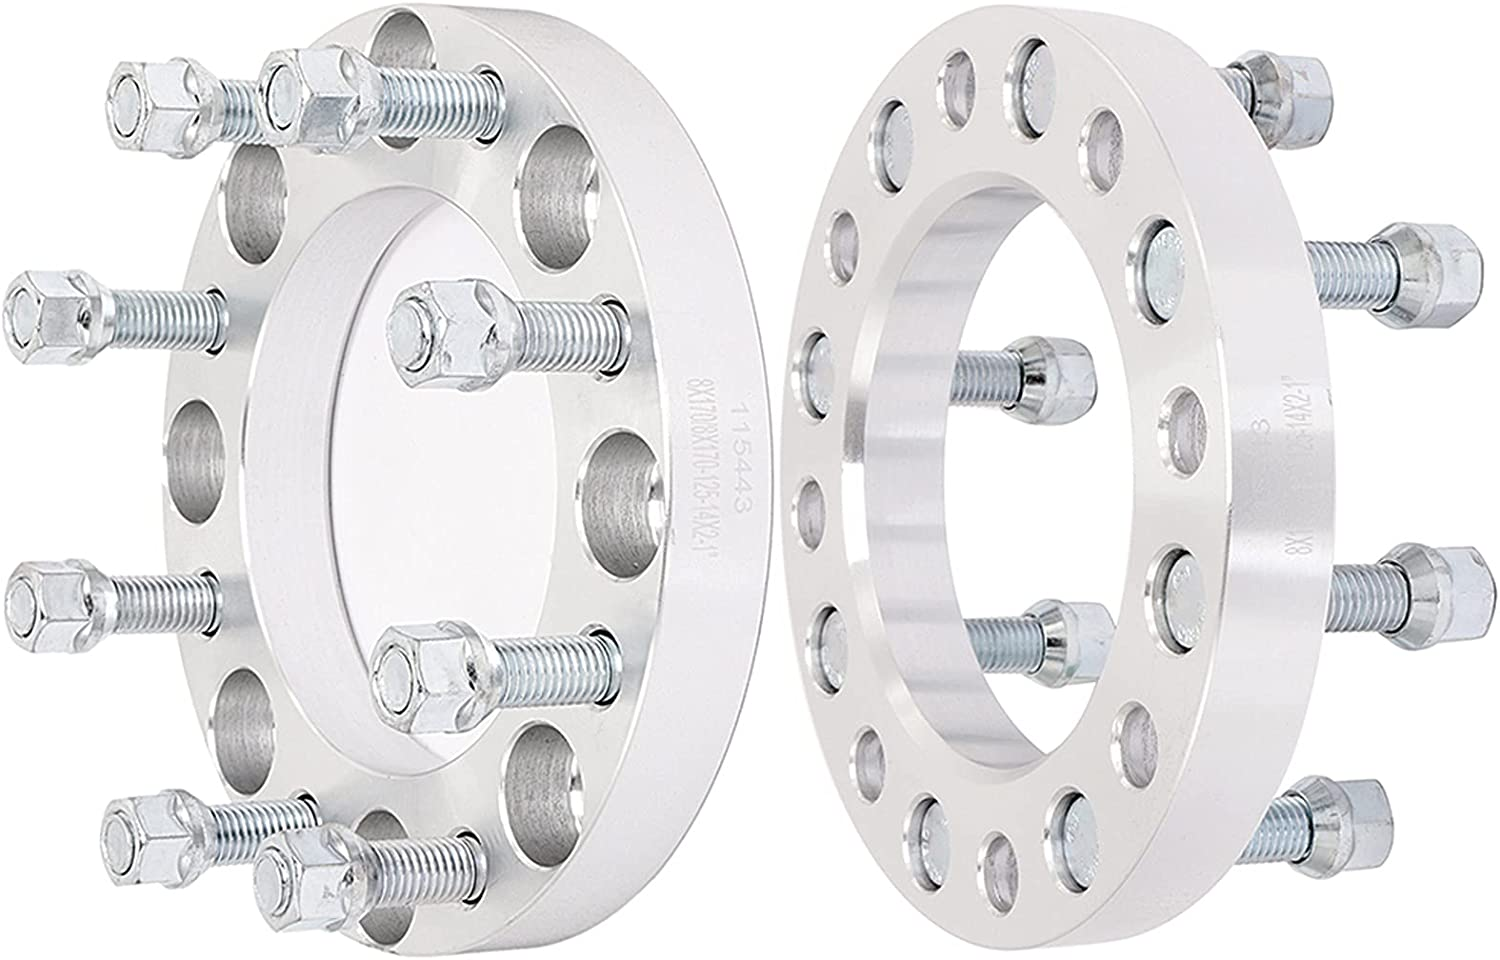 ECCPP Ranking TOP1 2X 1 inch 40% OFF Cheap Sale 25mm Thick Wheel Spacer to 8x170 8 Lug